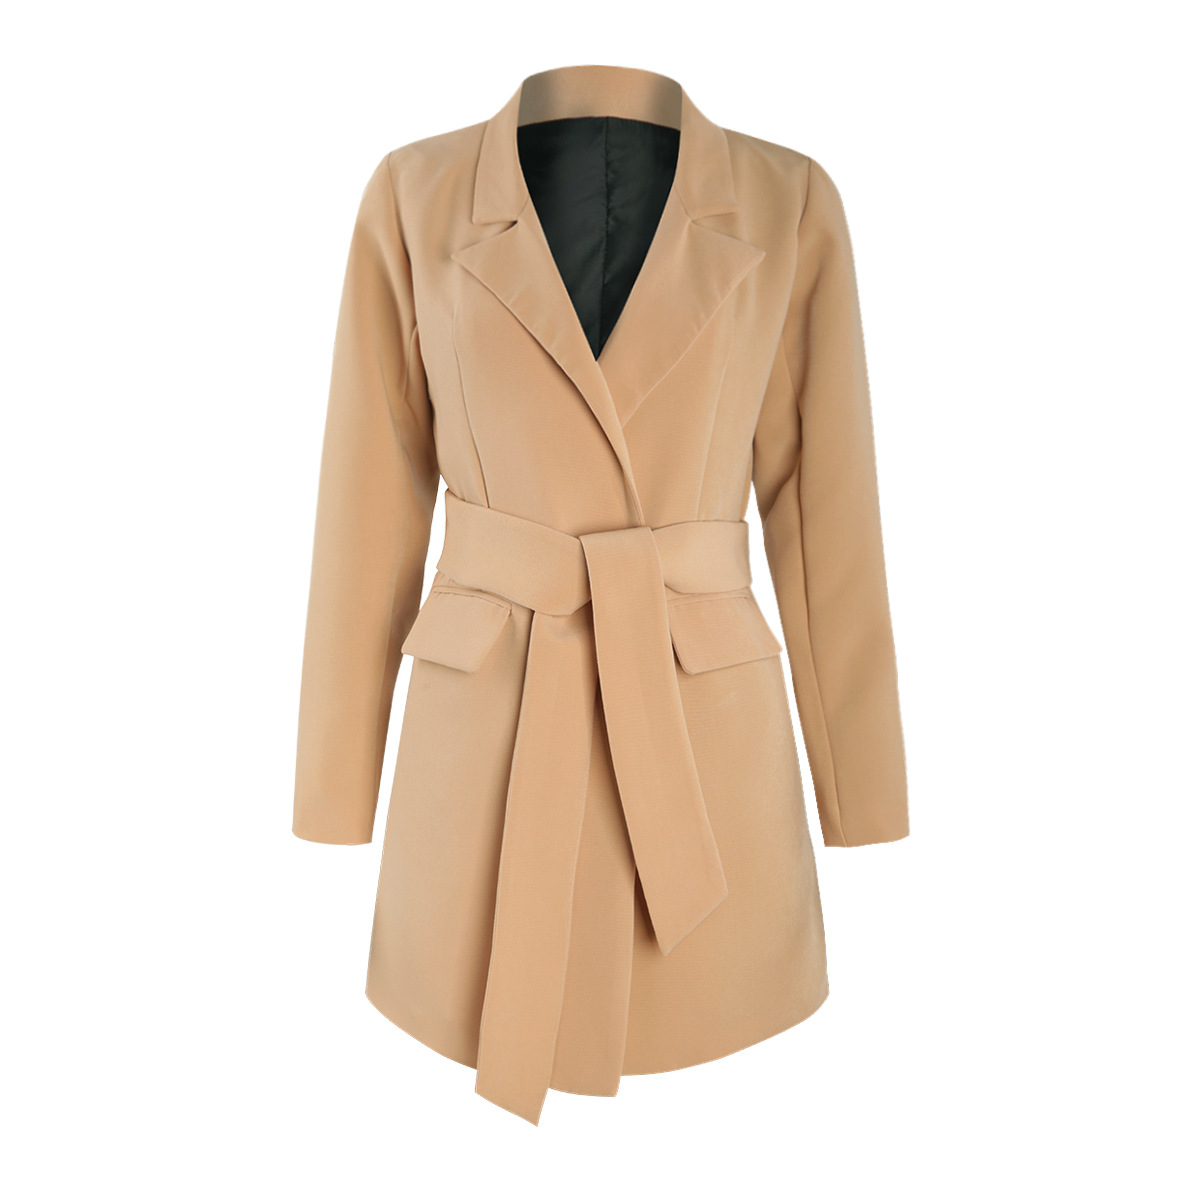 Simple Commuter Camel Color Large Necktie Pocket Belt Trim Suit And Coat 2019 Pockets Notched Women Jackets And Coats Suit